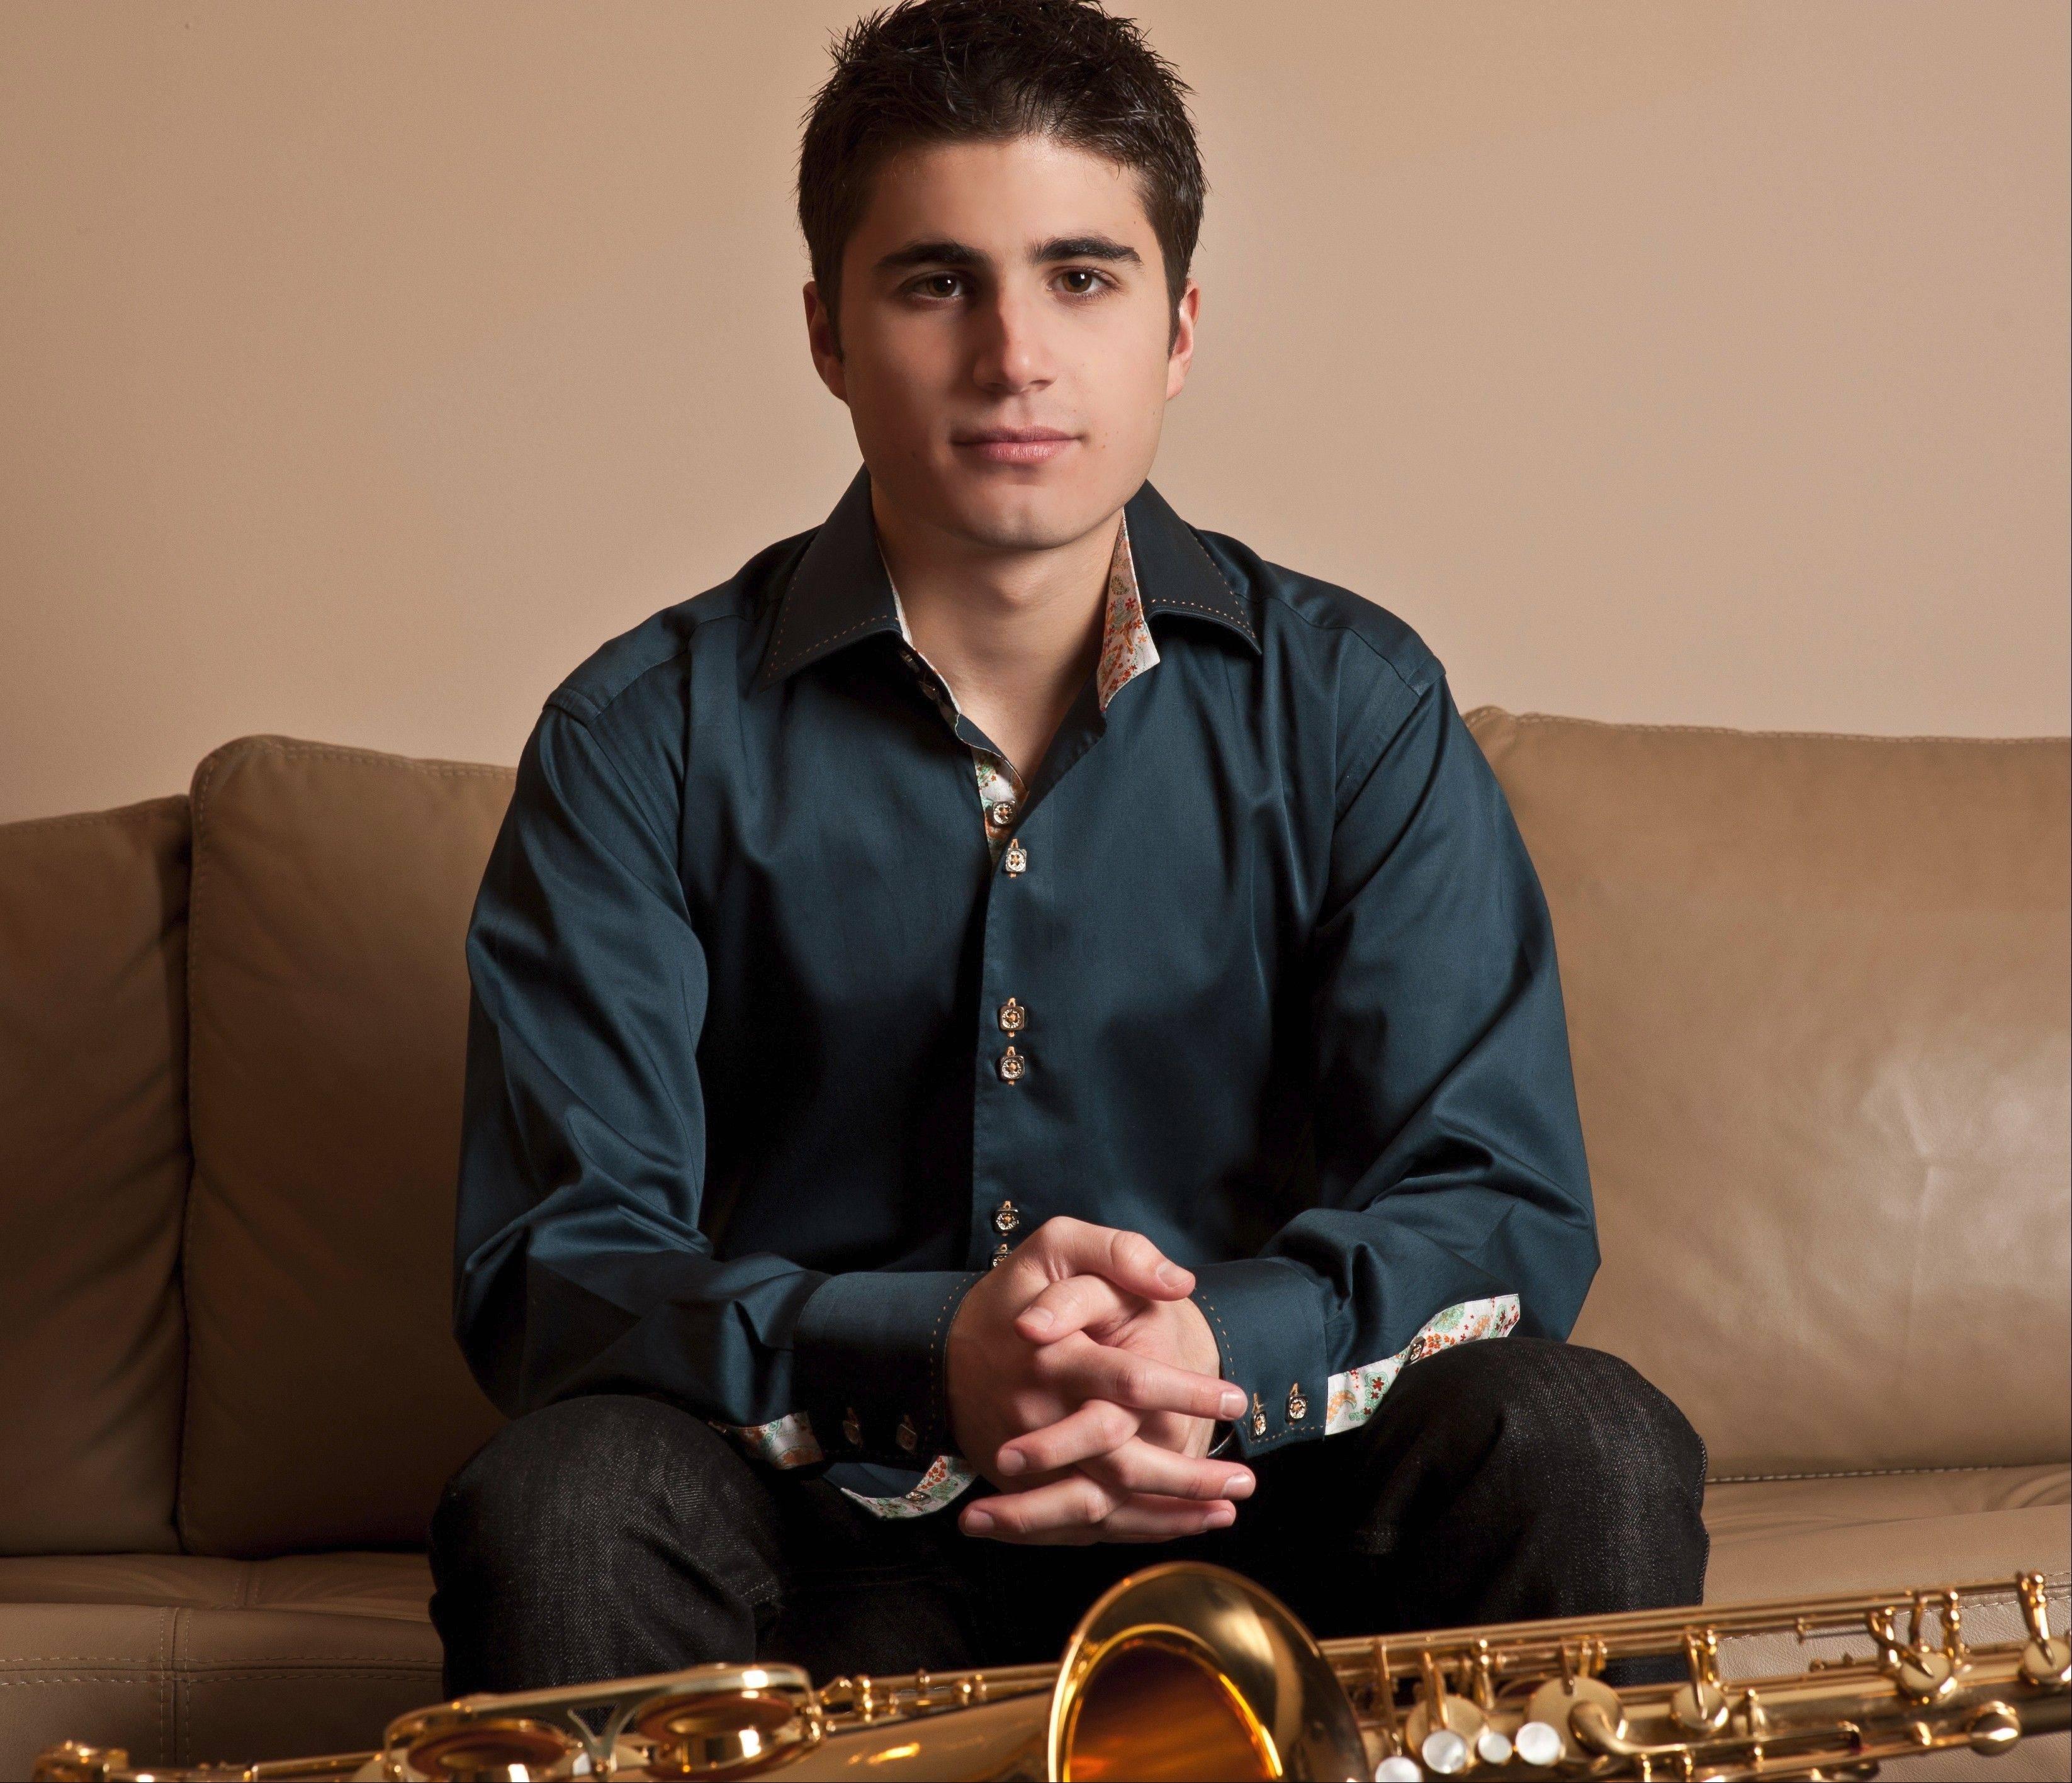 Saxophonist Vincent Ingala performs in concert at the Montrose Room at the InterContinental O'Hare Hotel in Rosemont on Saturday, Oct. 26.